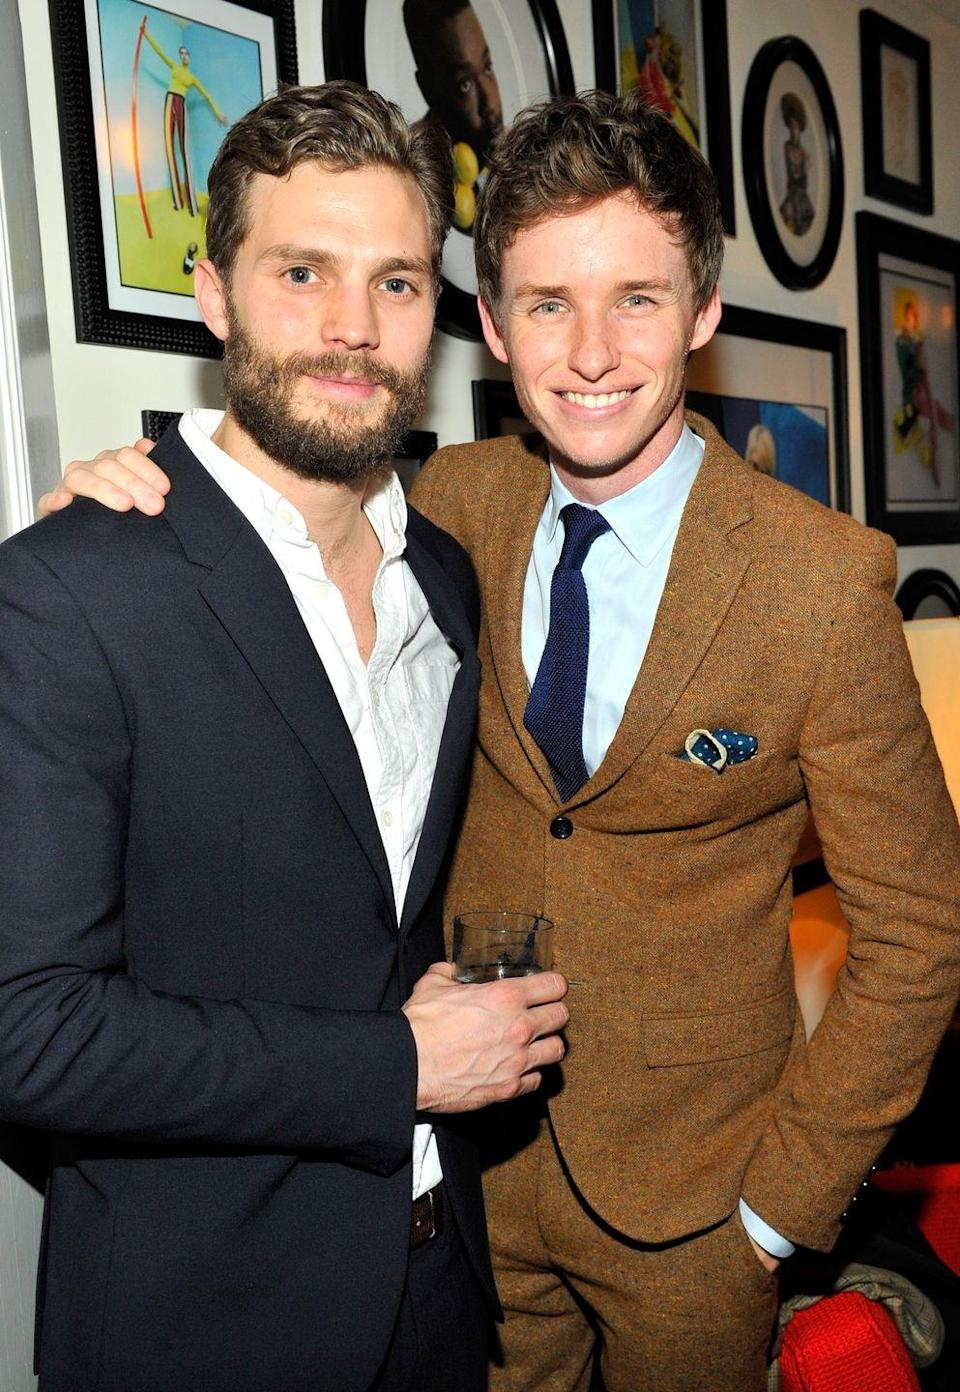 """<p>The <em>Fifty Shades of Grey</em> star recently revealed that he and Redmayne <a href=""""http://www.dailymail.co.uk/tvshowbiz/article-2952760/Jamie-Dornan-reveals-shared-apartment-Eddie-Redmayne-struggling-actors-LA.html"""" rel=""""nofollow noopener"""" target=""""_blank"""" data-ylk=""""slk:shared an apartment"""" class=""""link rapid-noclick-resp"""">shared an apartment</a> when they were struggling actors. On <em>Live! With Kelly and Michael</em>, Dornan said, """"When we were fresh off the boat in L.A., someone from the agency dropped scripts for us. Must have been like 25 scripts in my pile and three in his."""" He explained that it just meant more failures for him—though the two have since seen success.</p>"""